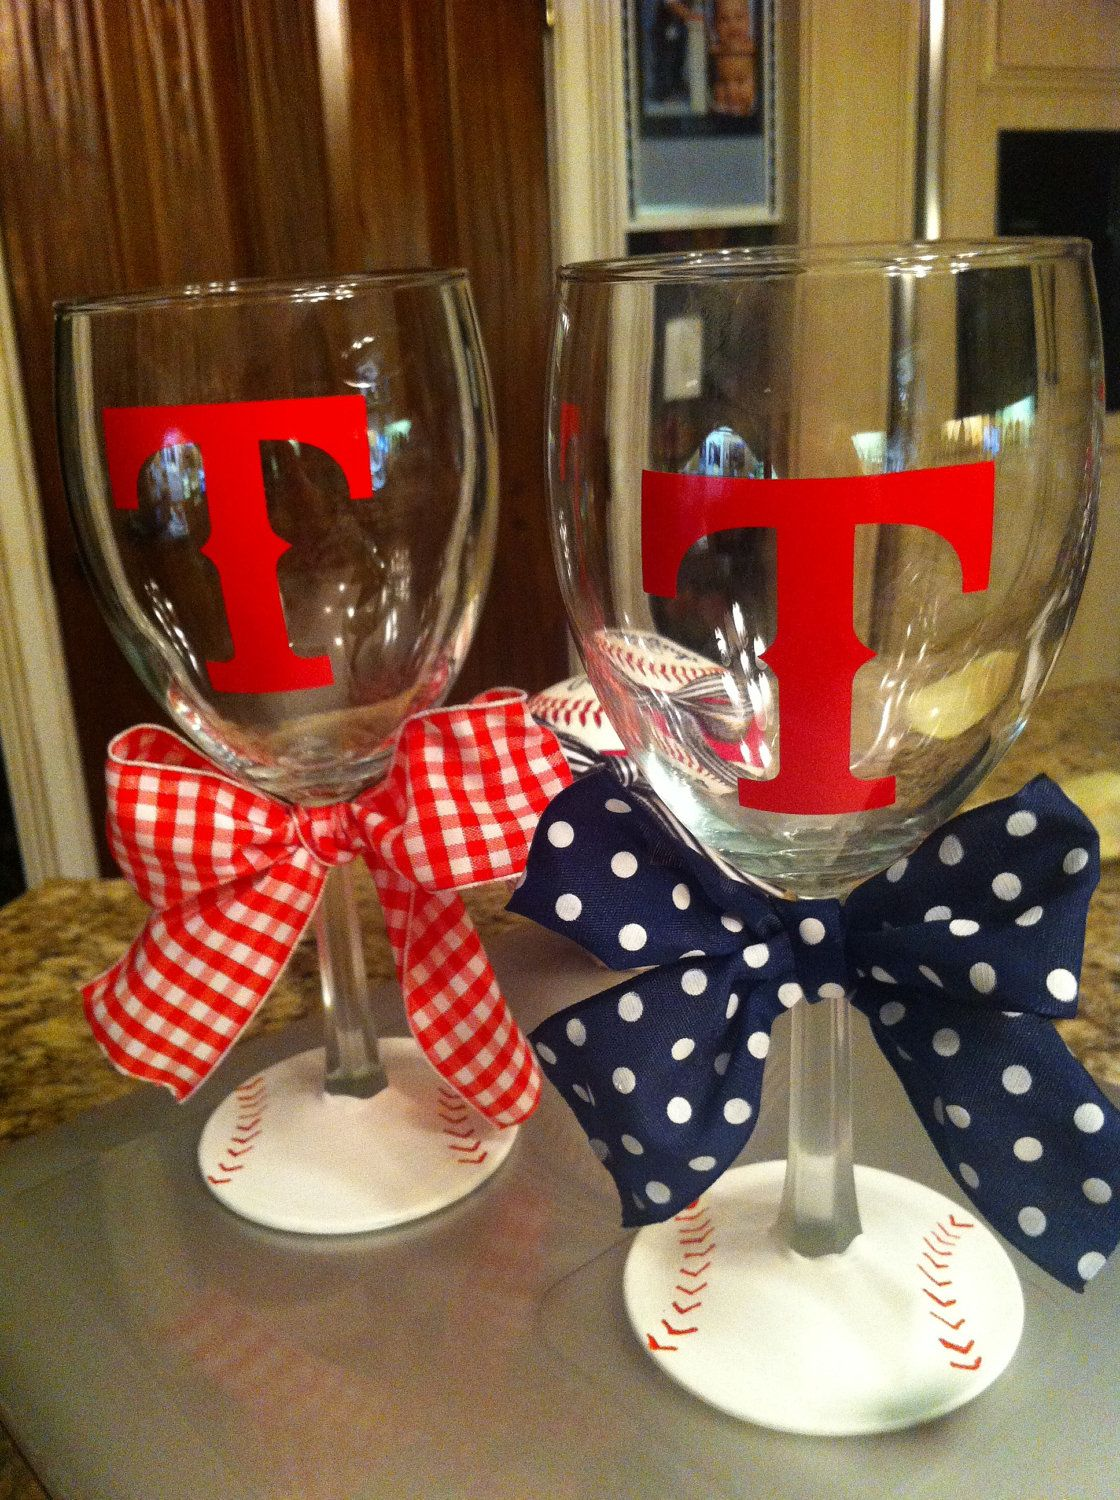 Mine Turned Out Almost Exactly Like This It Wasn T Easy But It Looks Great Used Regular Acrylic Paint A Wine Glass Decor Painted Wine Glasses Texas Rangers